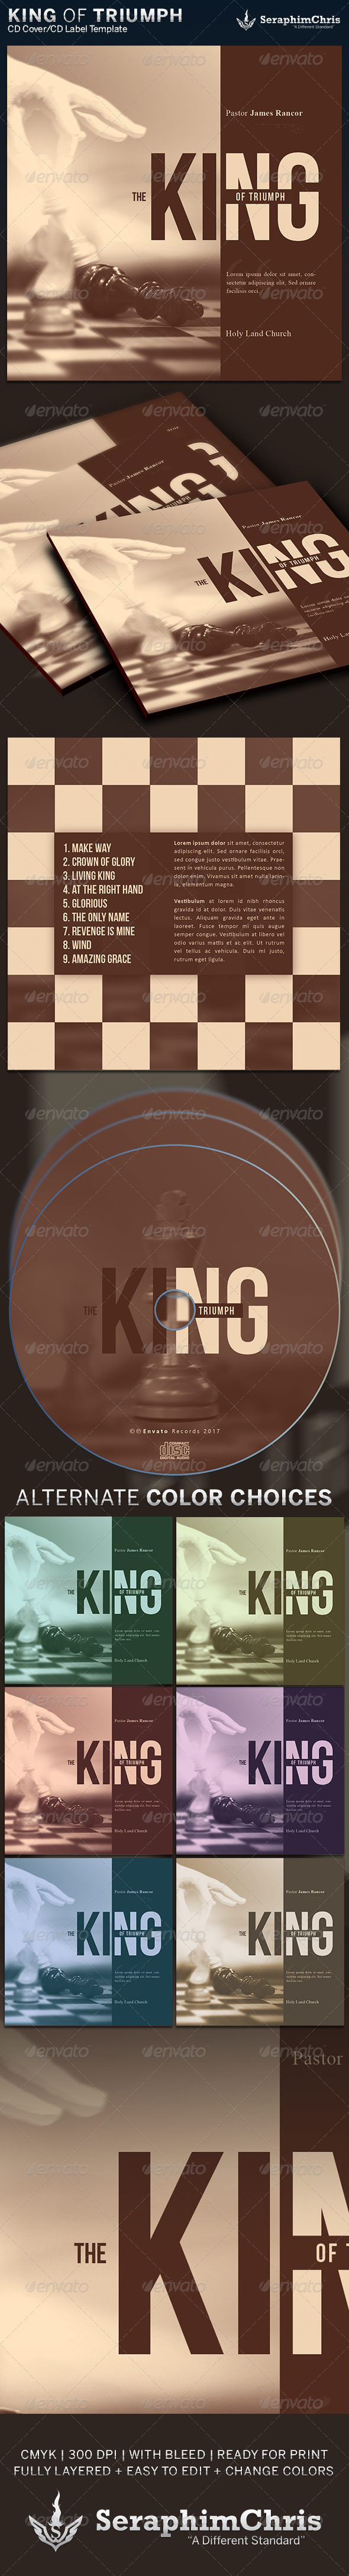 King of Triumph: CD Cover Artwork Template - CD & DVD Artwork Print Templates